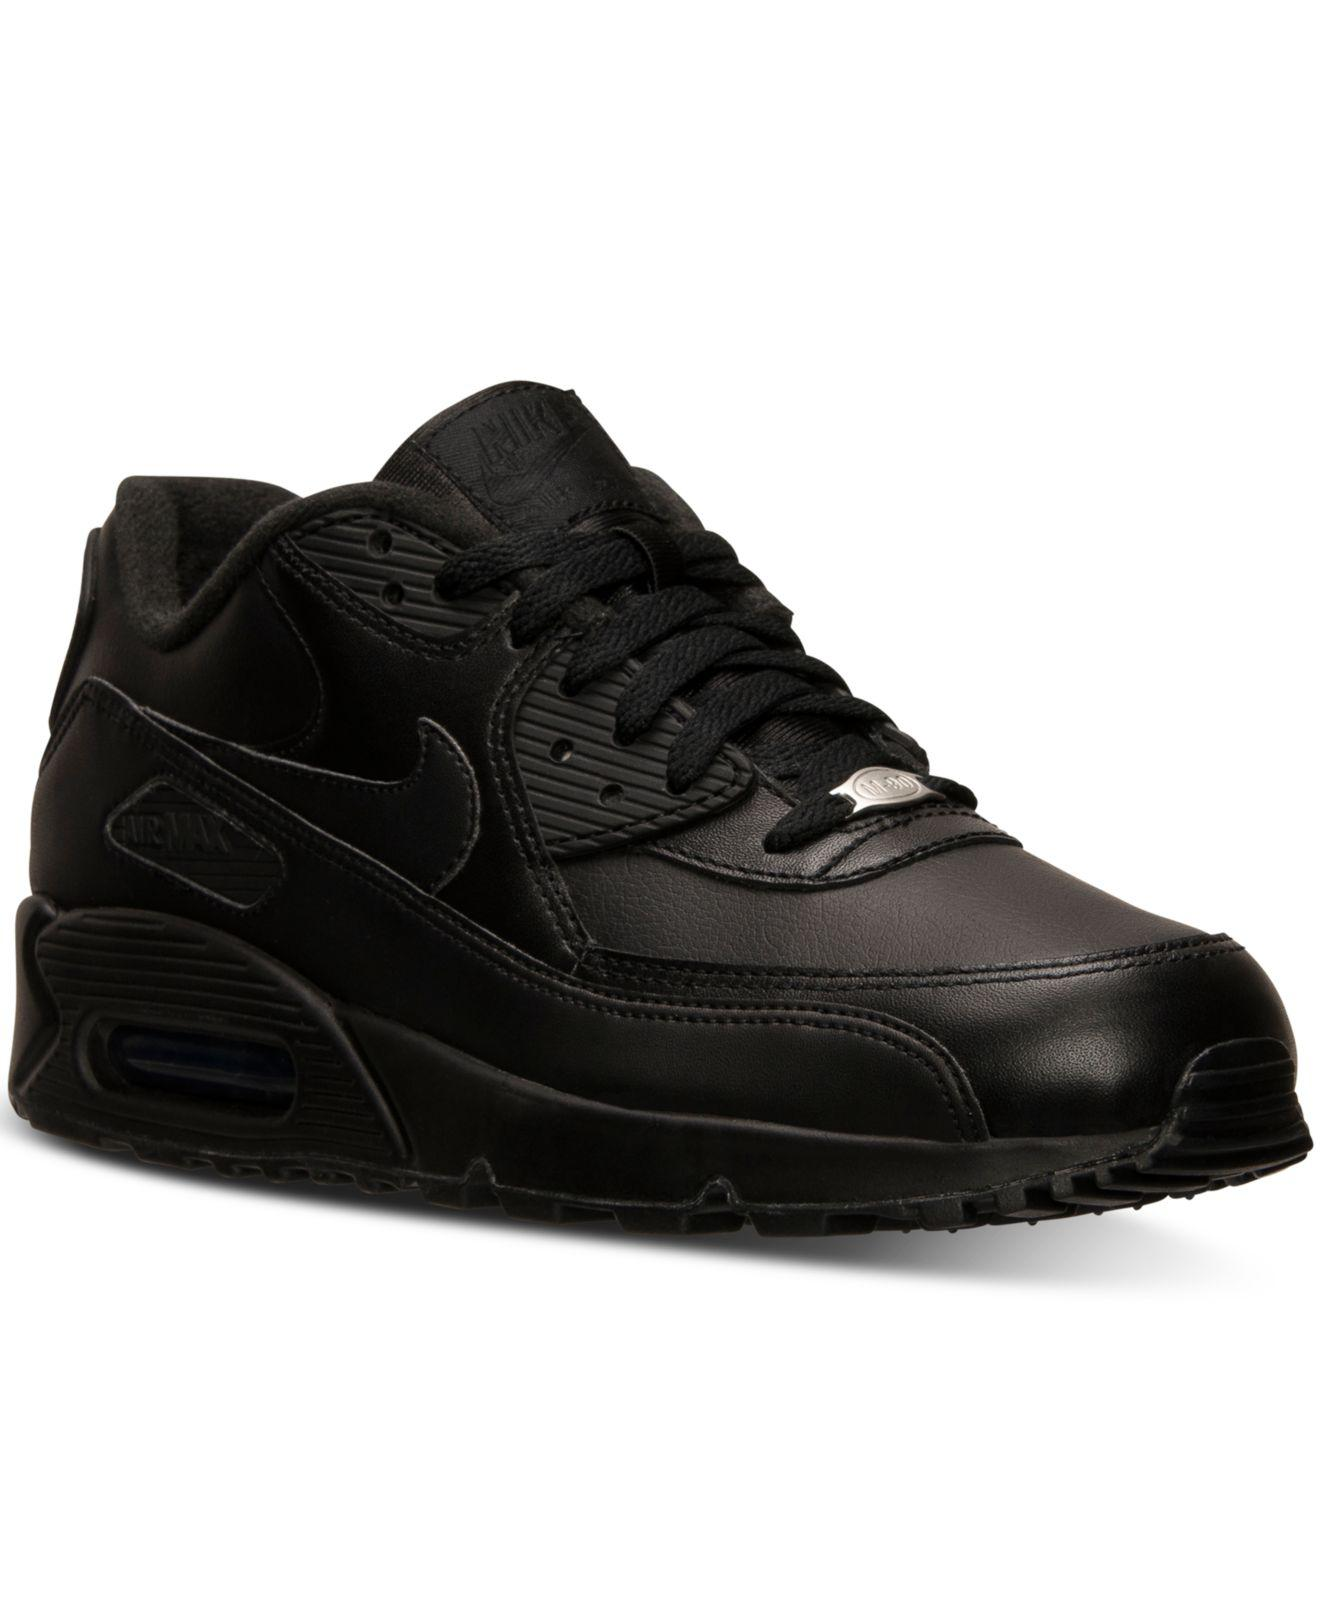 Nike. Black Men s Air Max 90 Leather Running Sneakers From Finish Line 47d3f38bd2f2